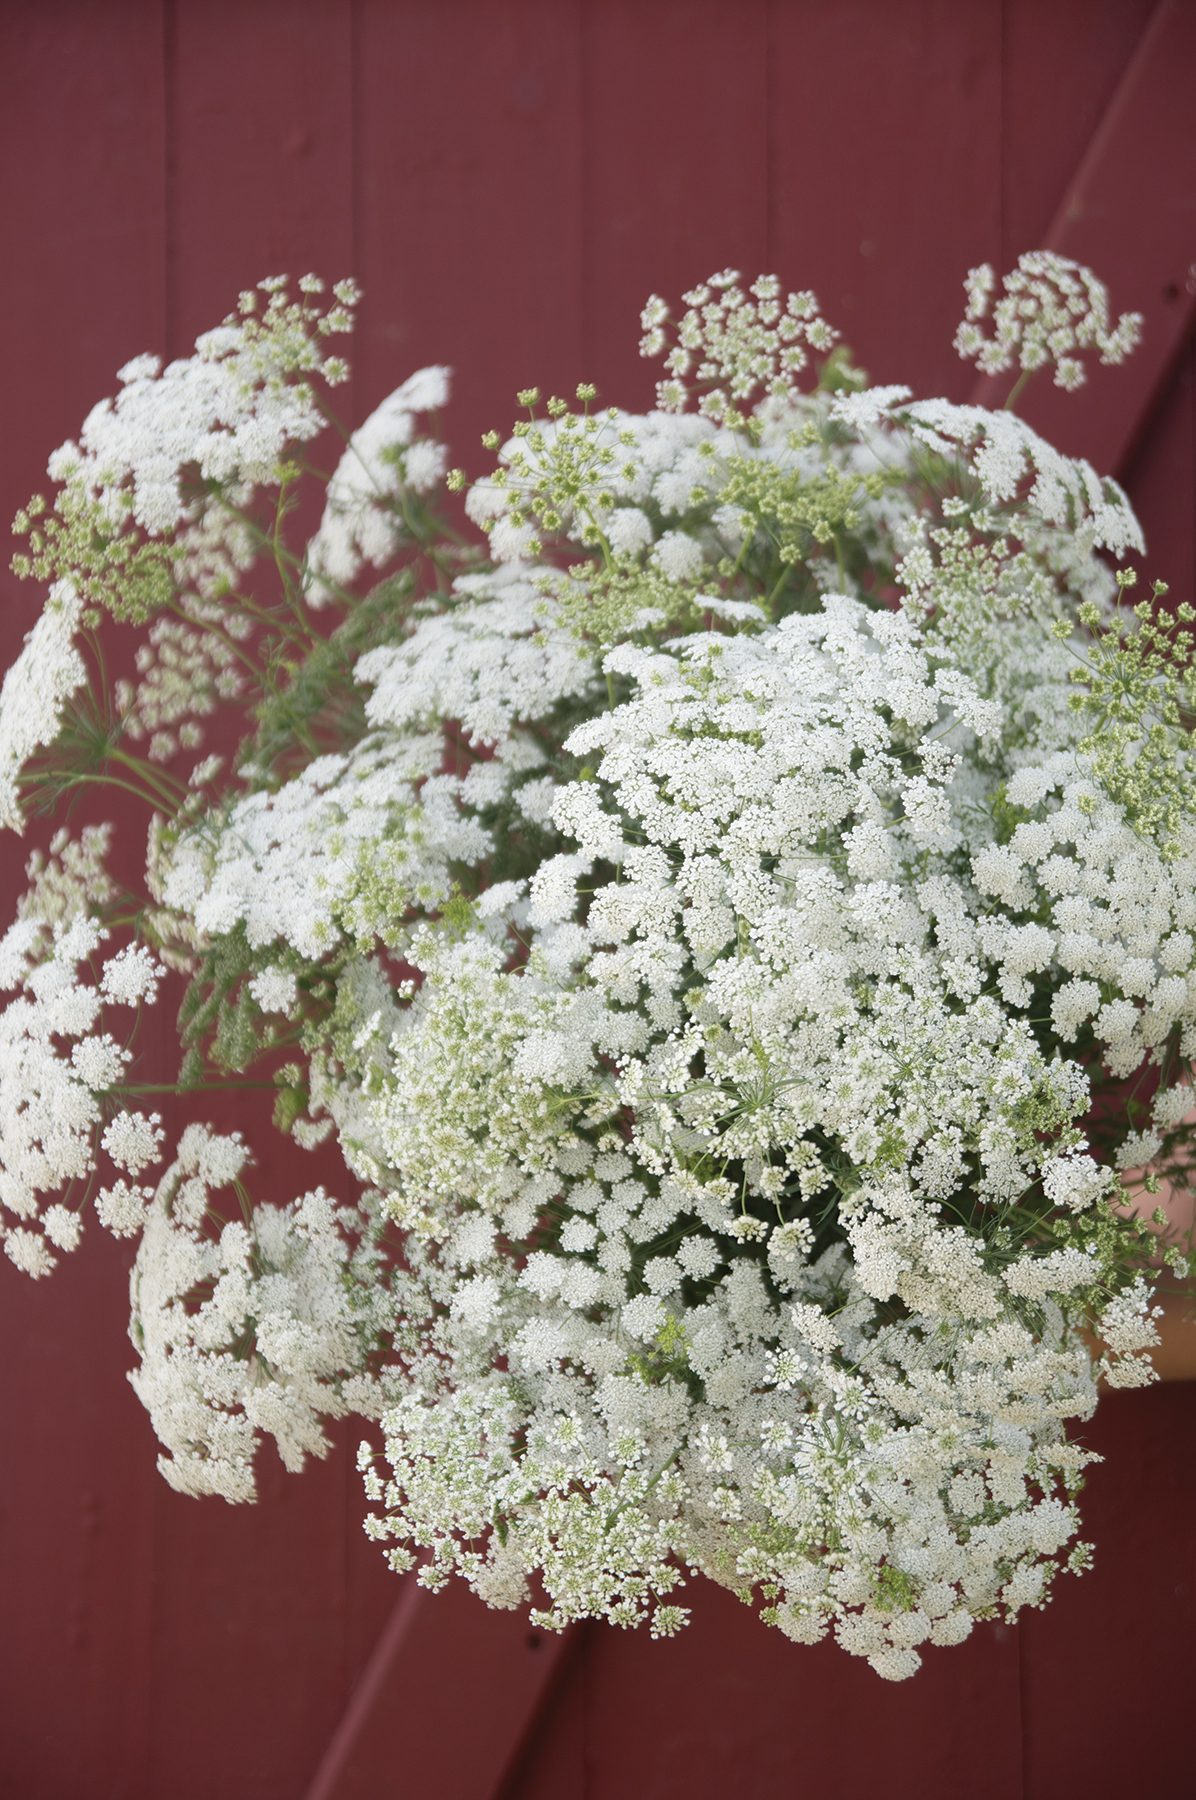 White Dill False Queen Anne's Lace Ammi